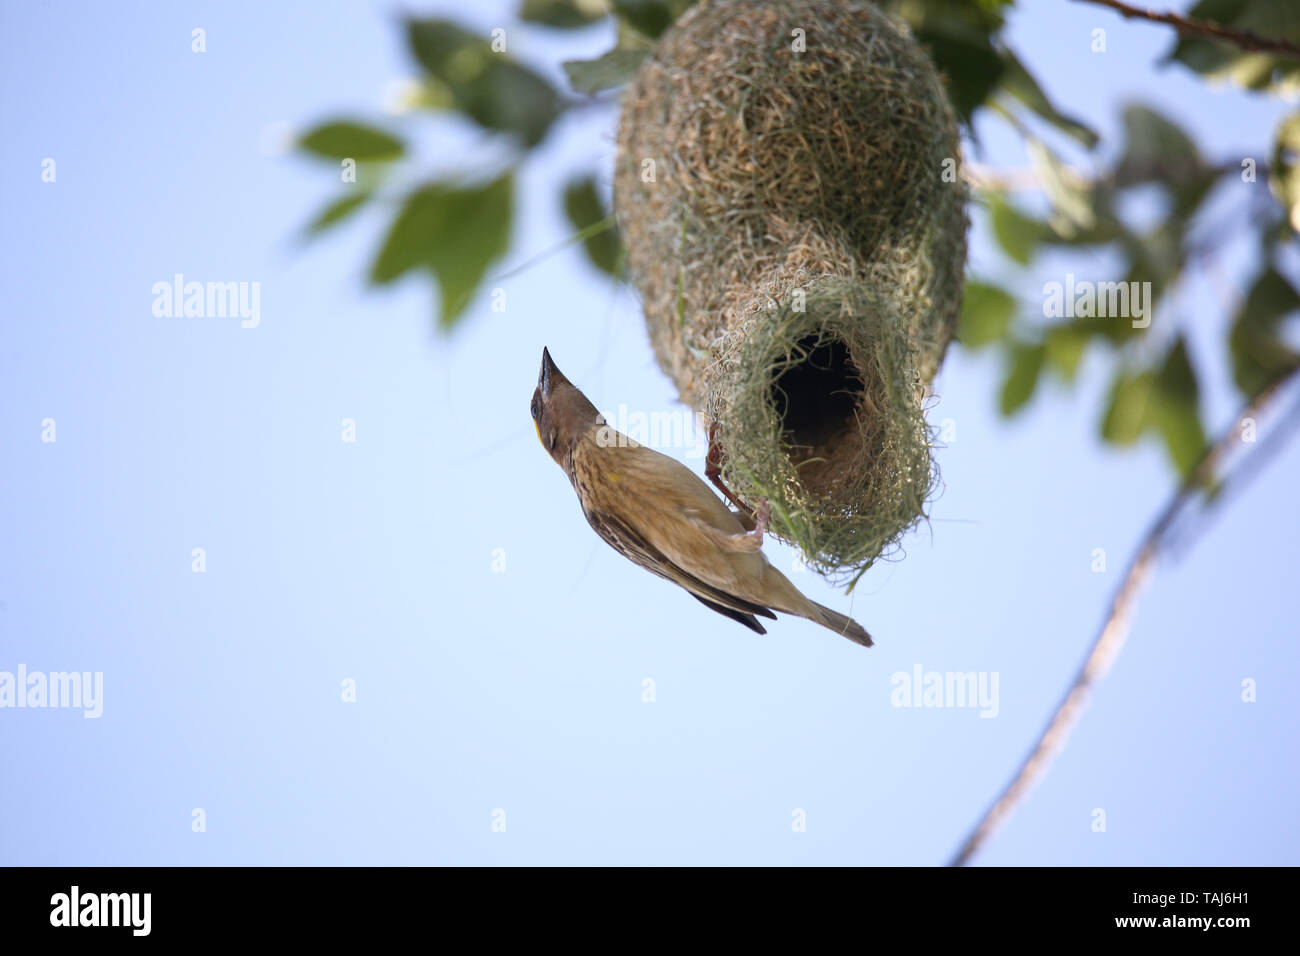 Kathmandu, Other, Nepal. 25th May, 2019. A Baya weaver bird seen weaving its nest in a tree.Weavers are known for their elaborately woven nests. Credit: Sunil Pradhan/SOPA Images/ZUMA Wire/Alamy Live News - Stock Image